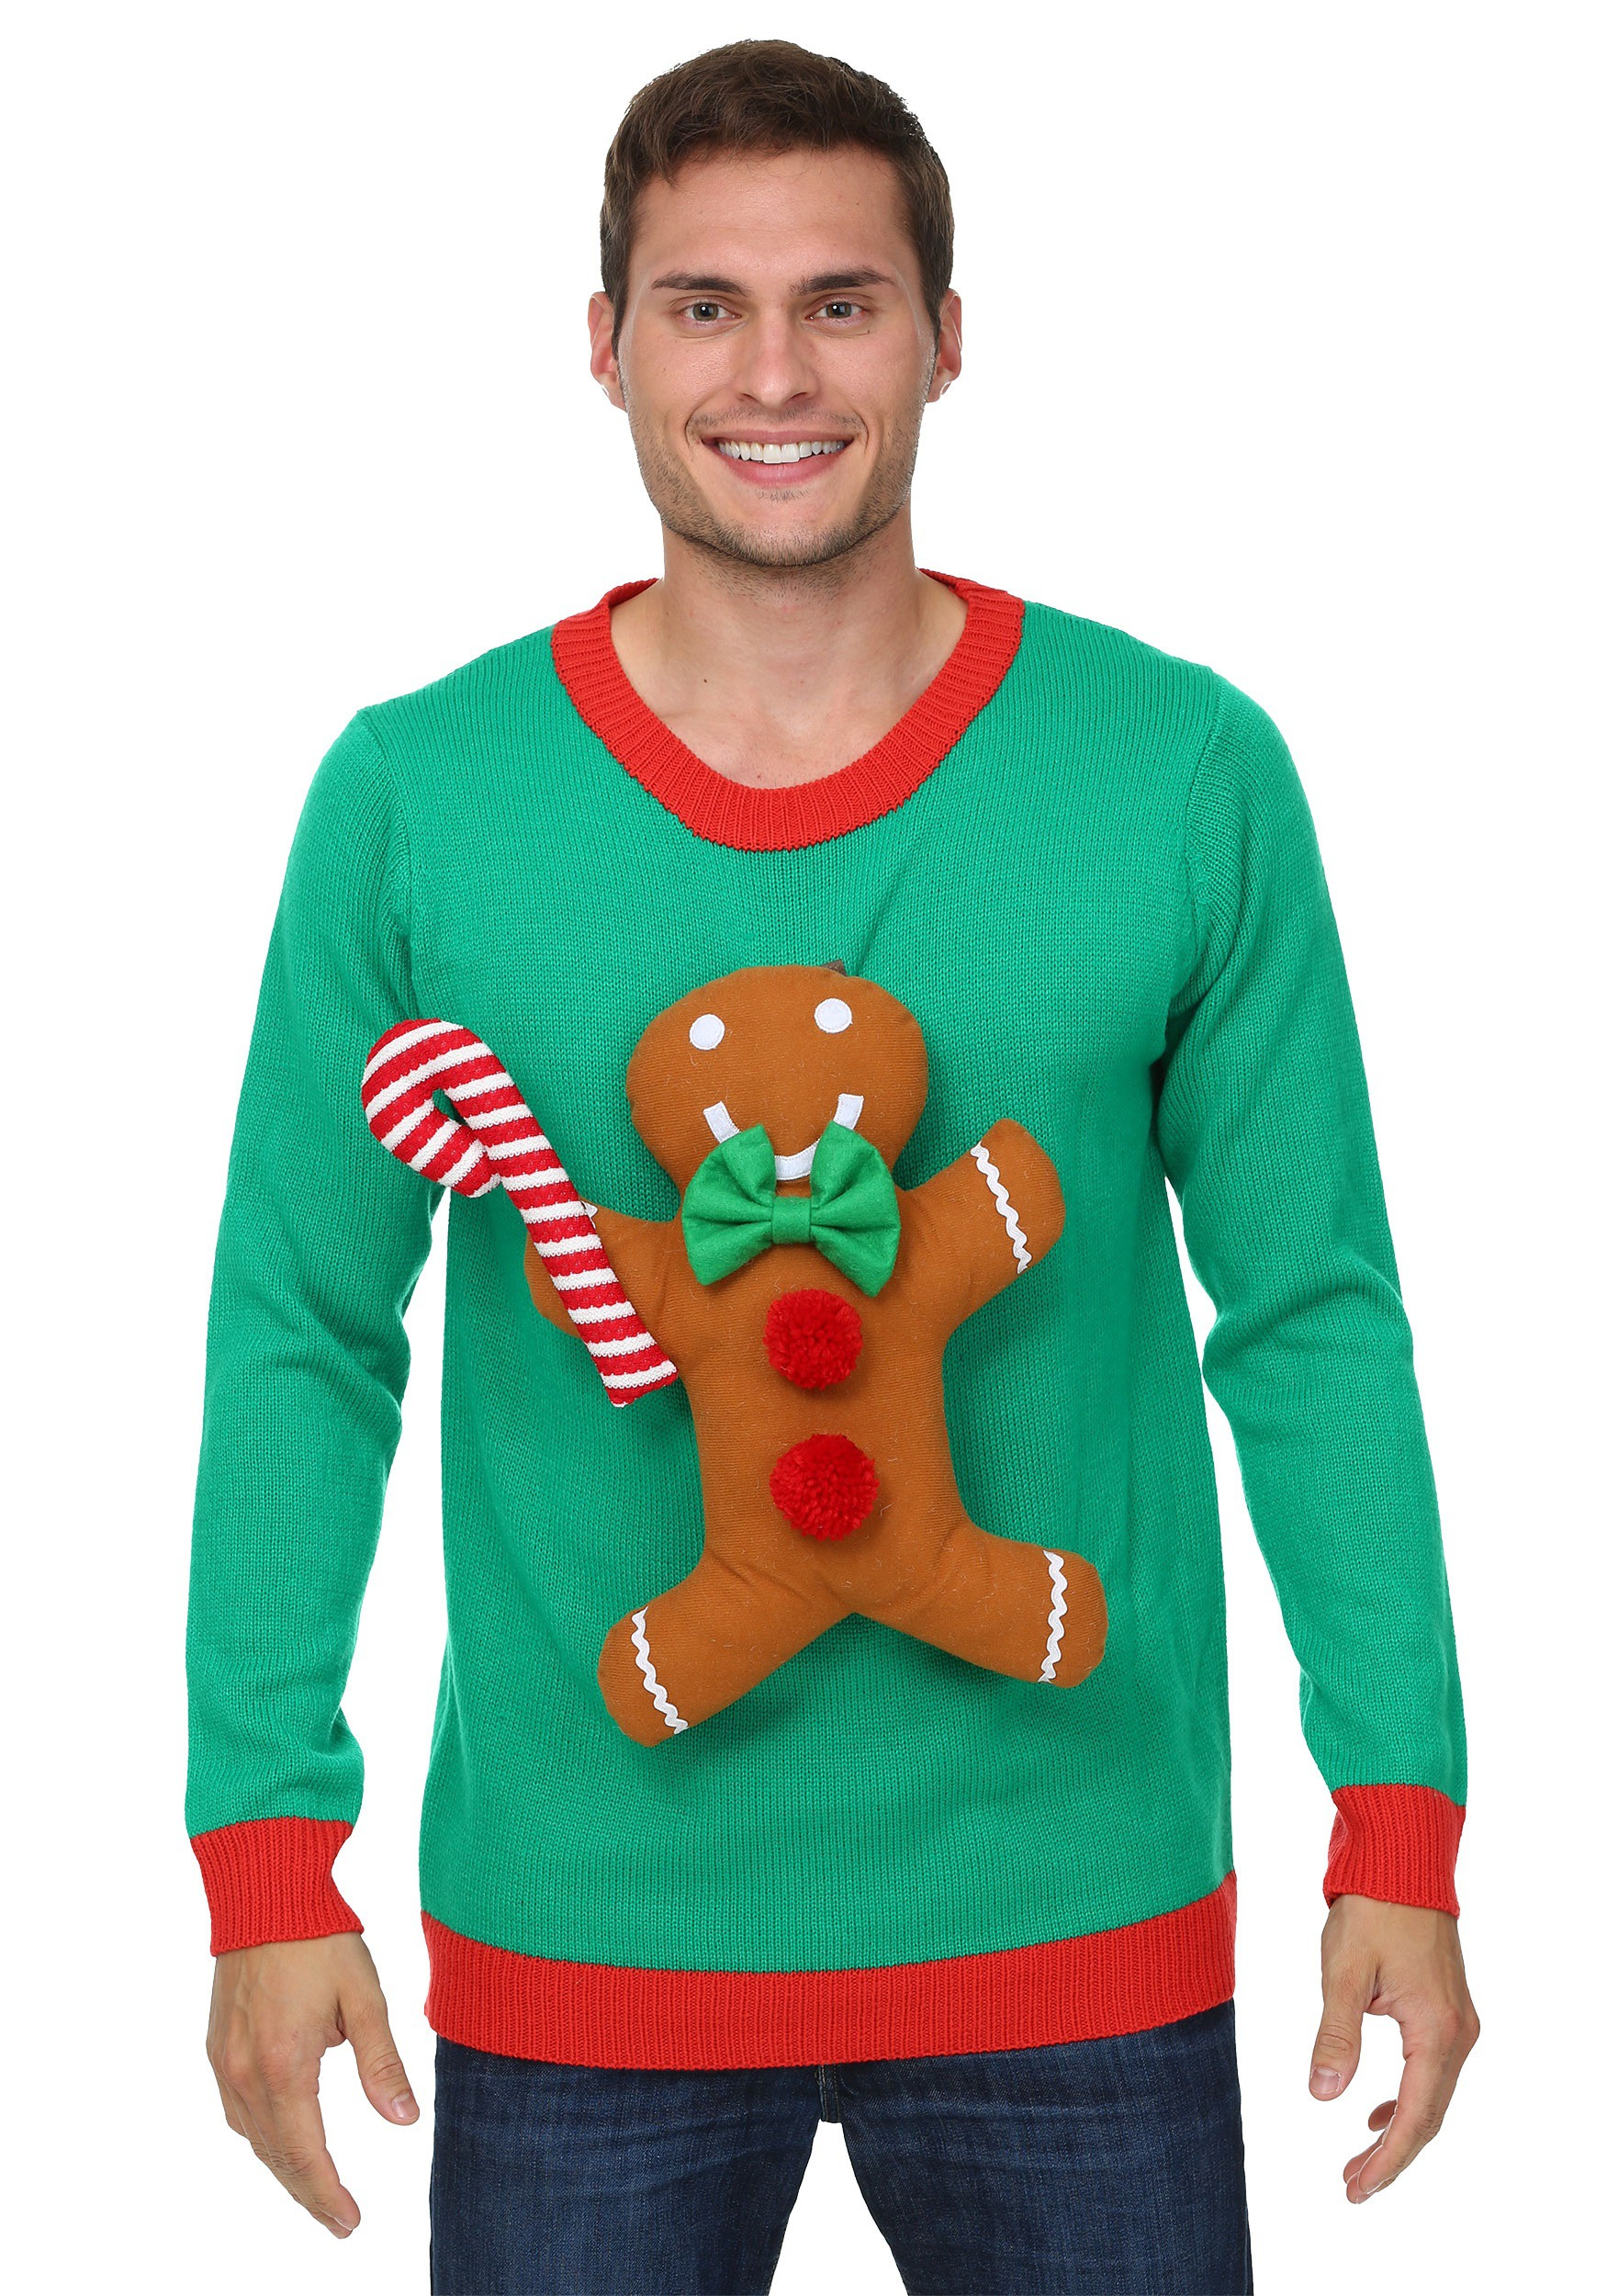 3d gingerbread man christmas sweater iemxbfd